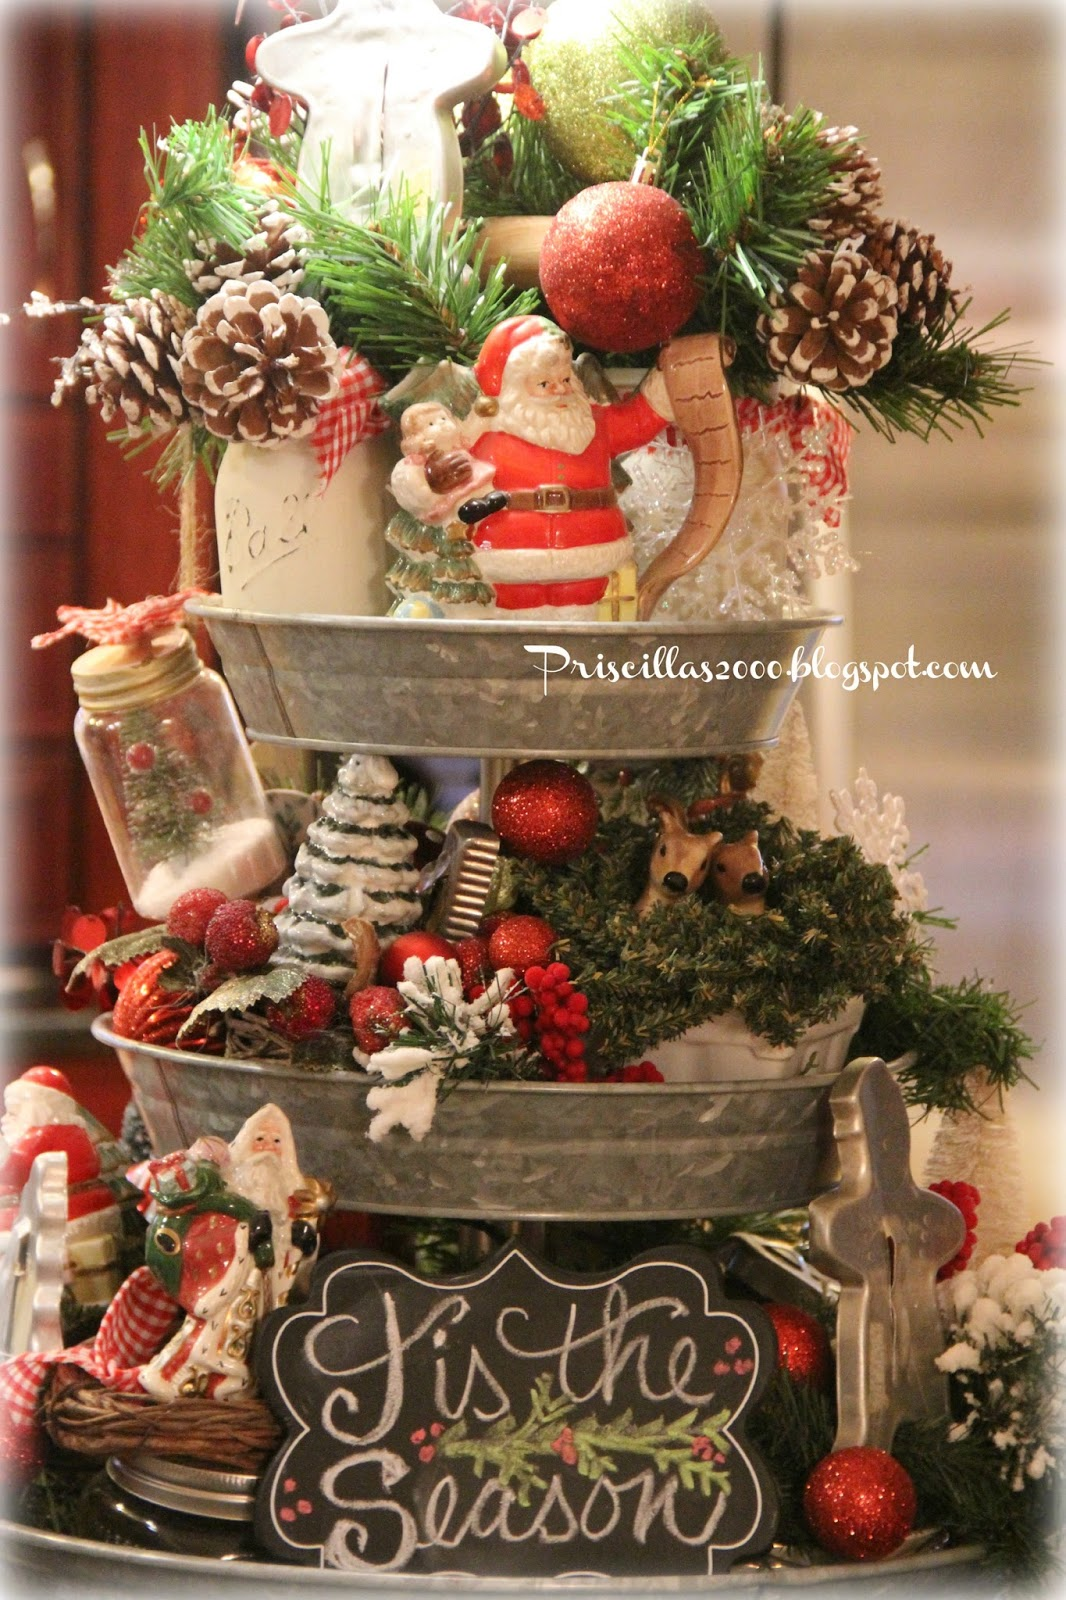 Can I Put My Christmas Decorations Up In November : Priscillas christmas galvanized tiered tray